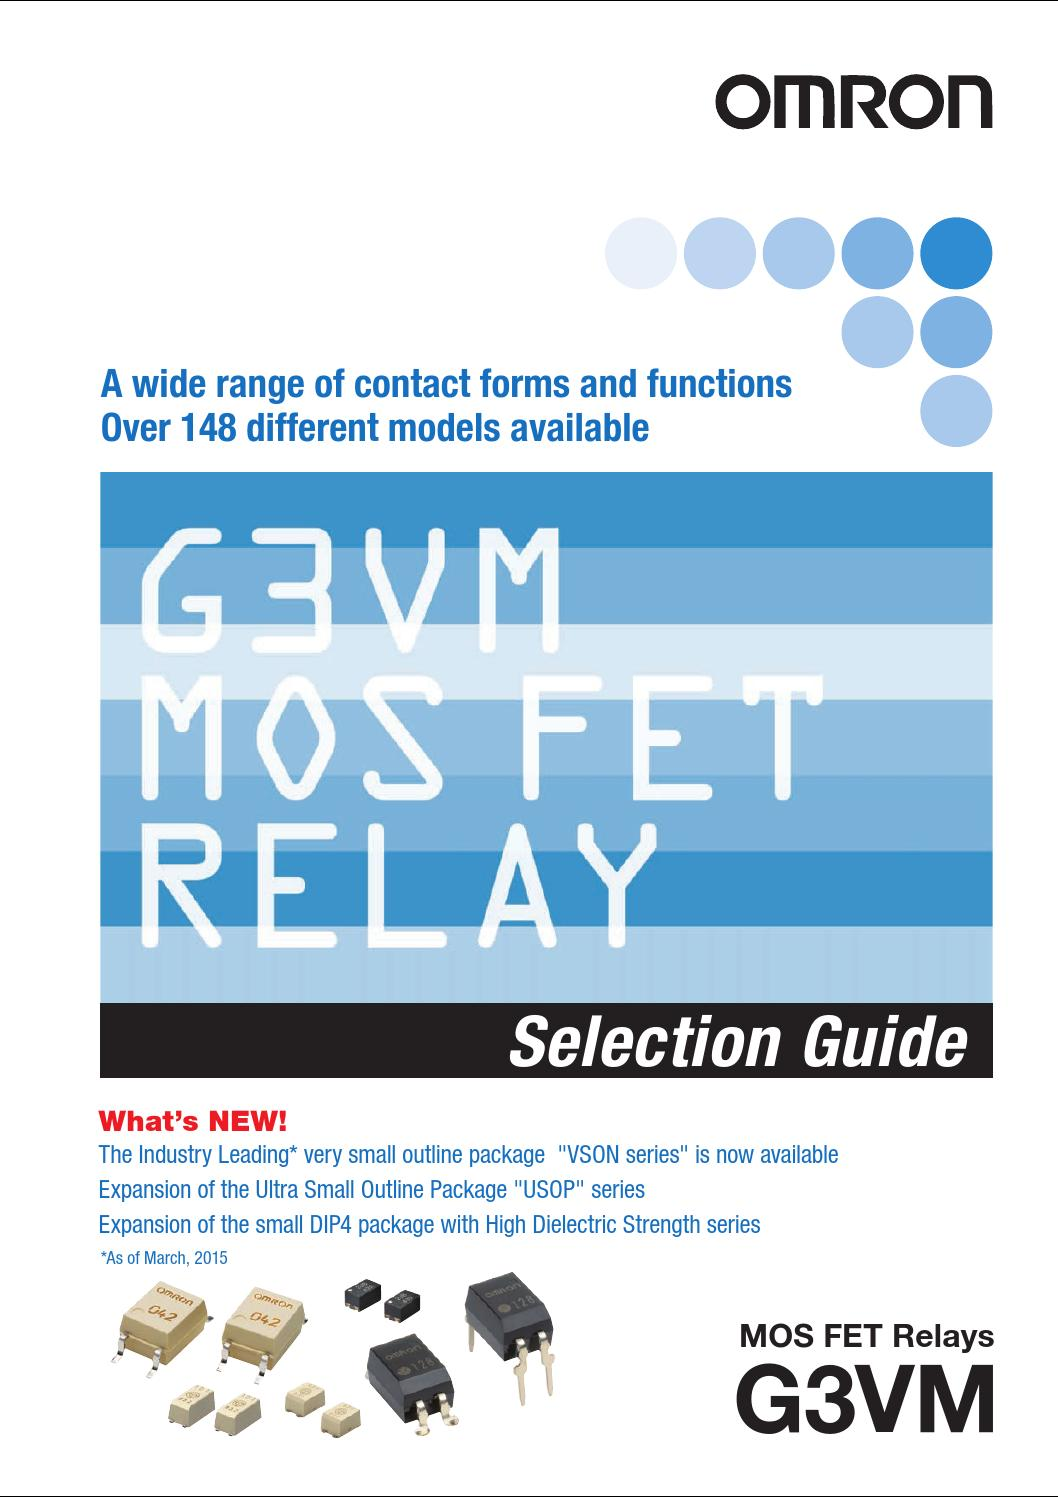 Mosfet Relay Selection Guide By Omron Electronic Components Basic Functions Of A Americas Issuu